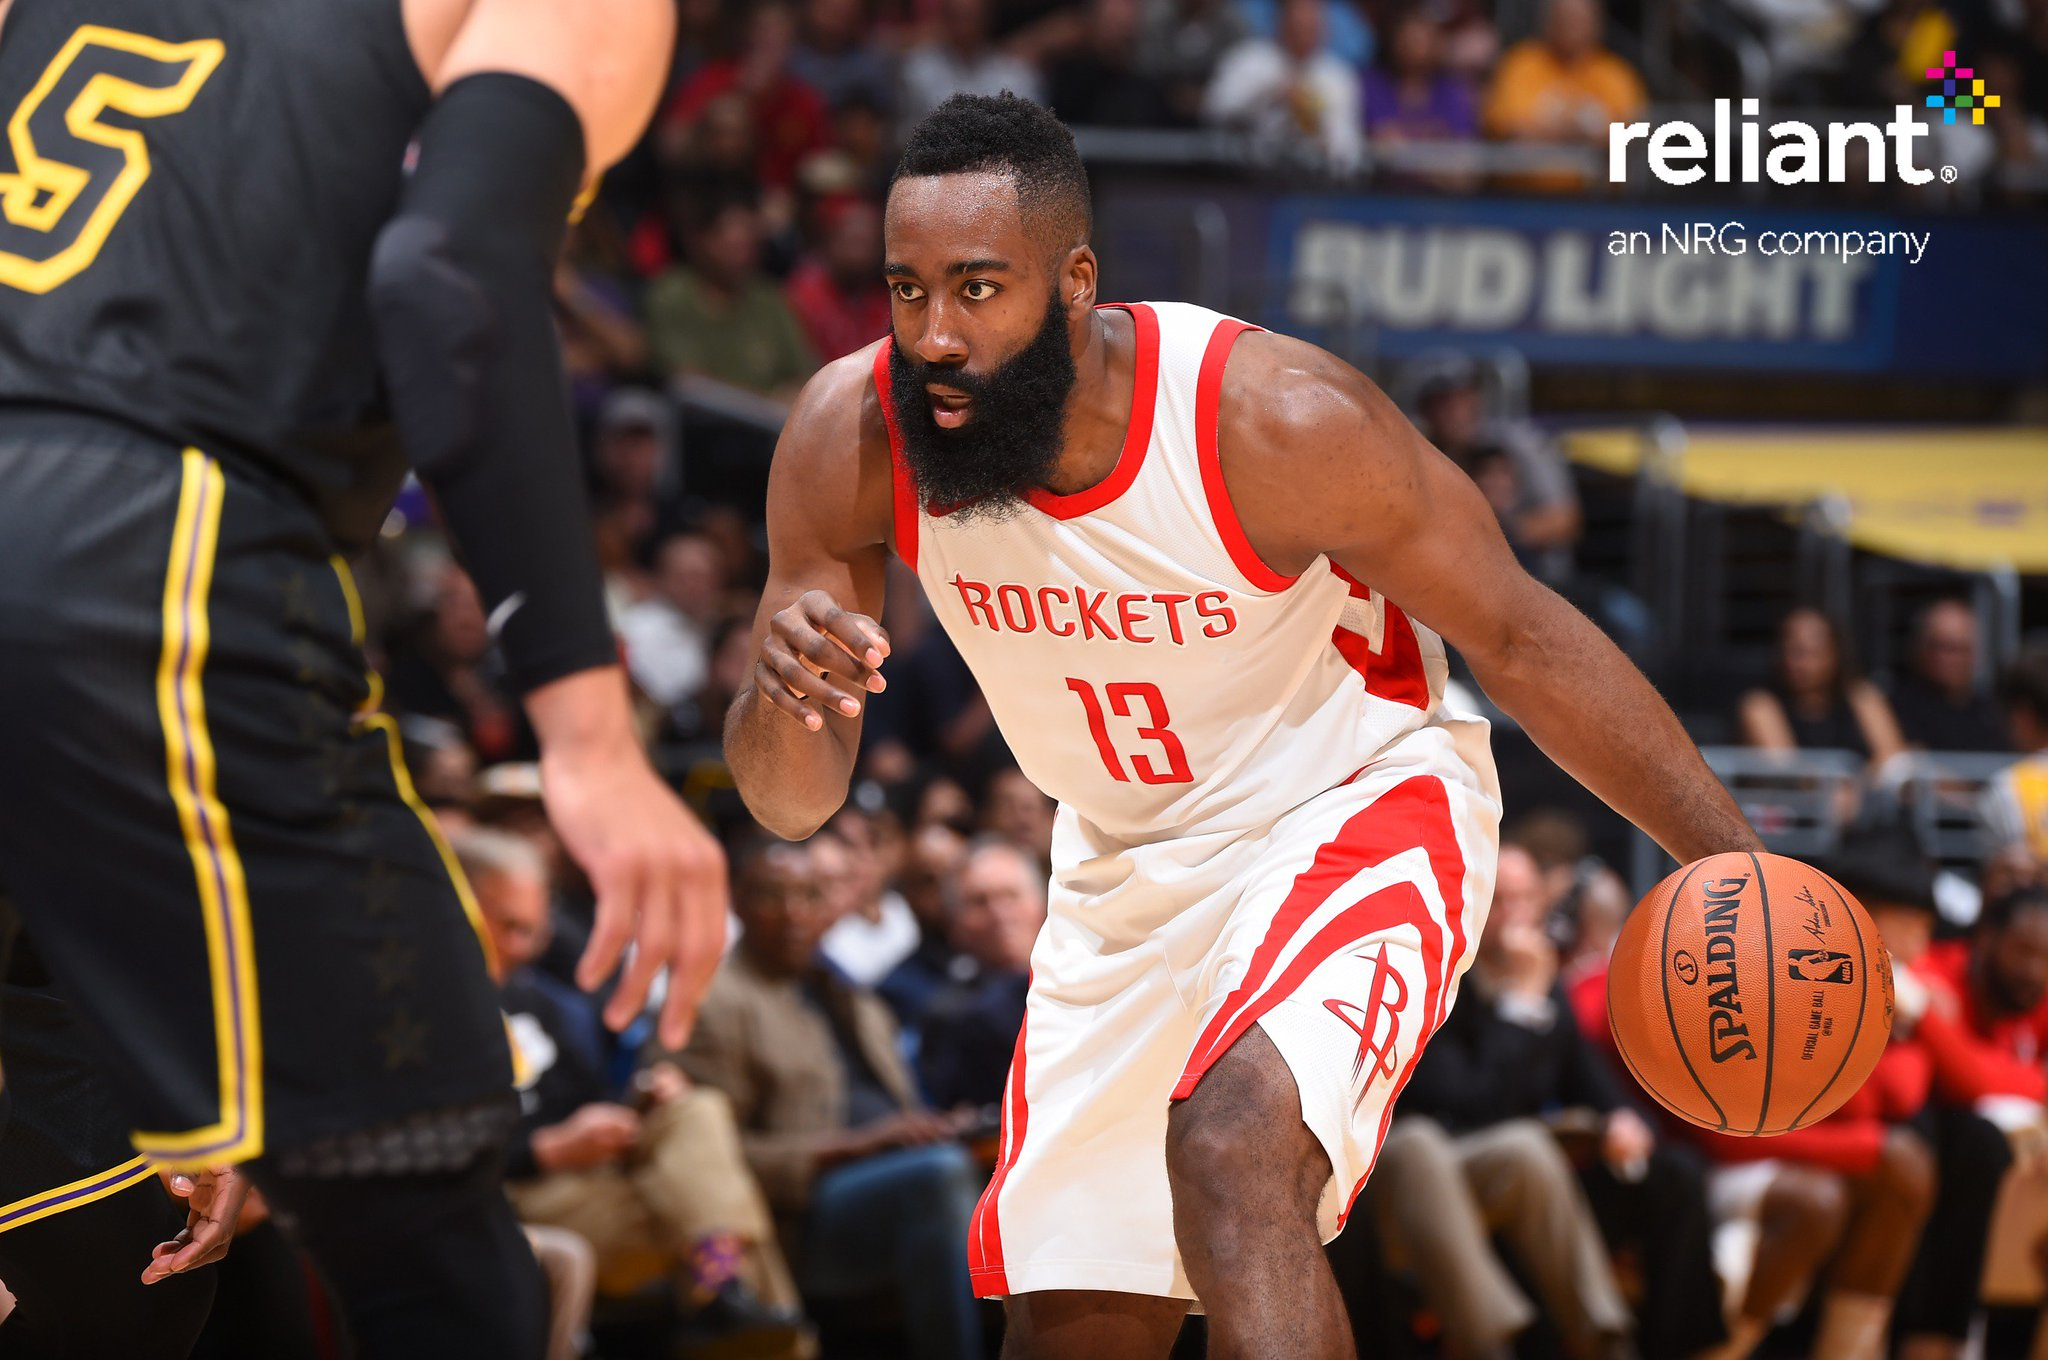 The #MVP racked up a double-double in the win at L.A. last night!  ��21 pts ��10 ast #LifeSwitchedOn https://t.co/jHaLJ9PIIE